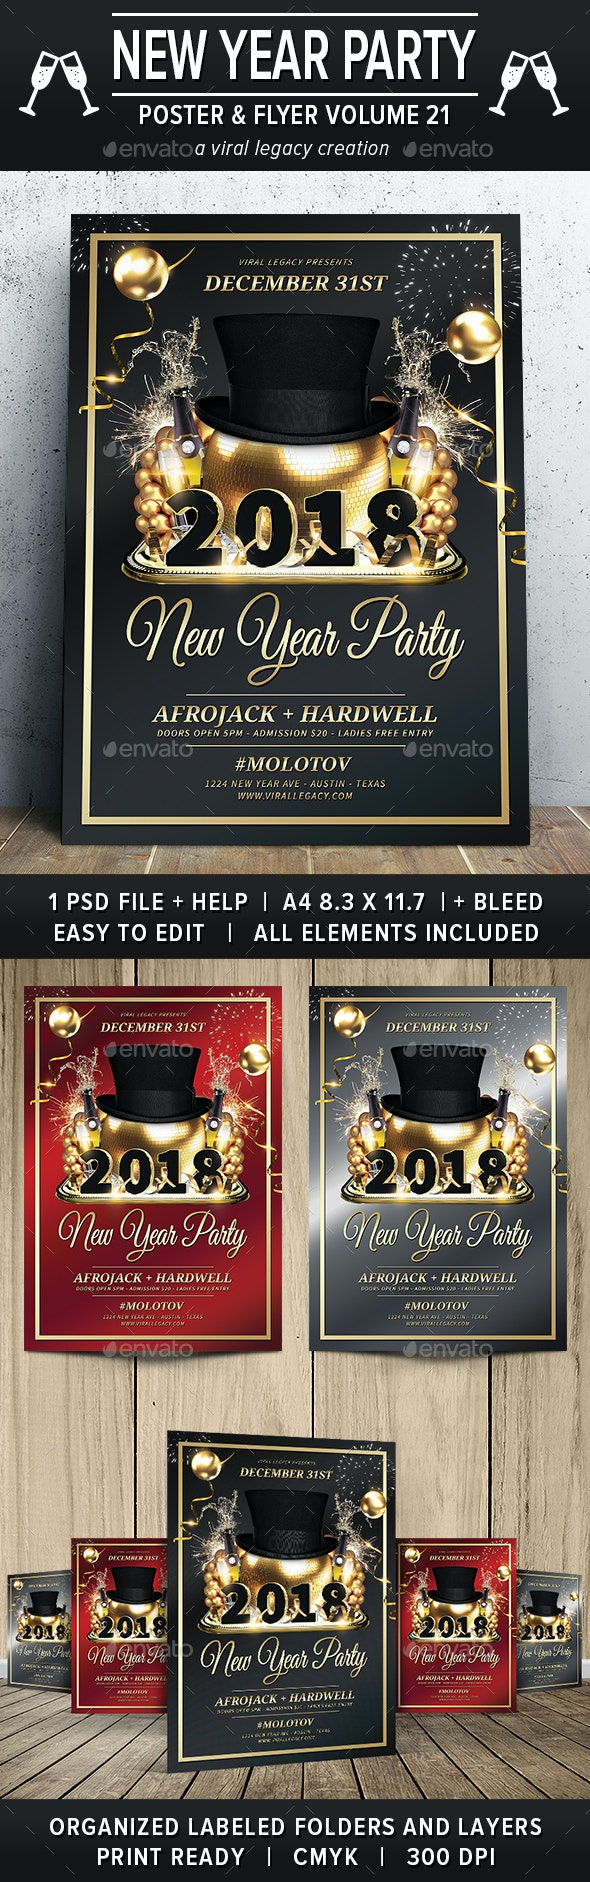 New Year Party Poster / Flyer V21 - Flyers Print Templates